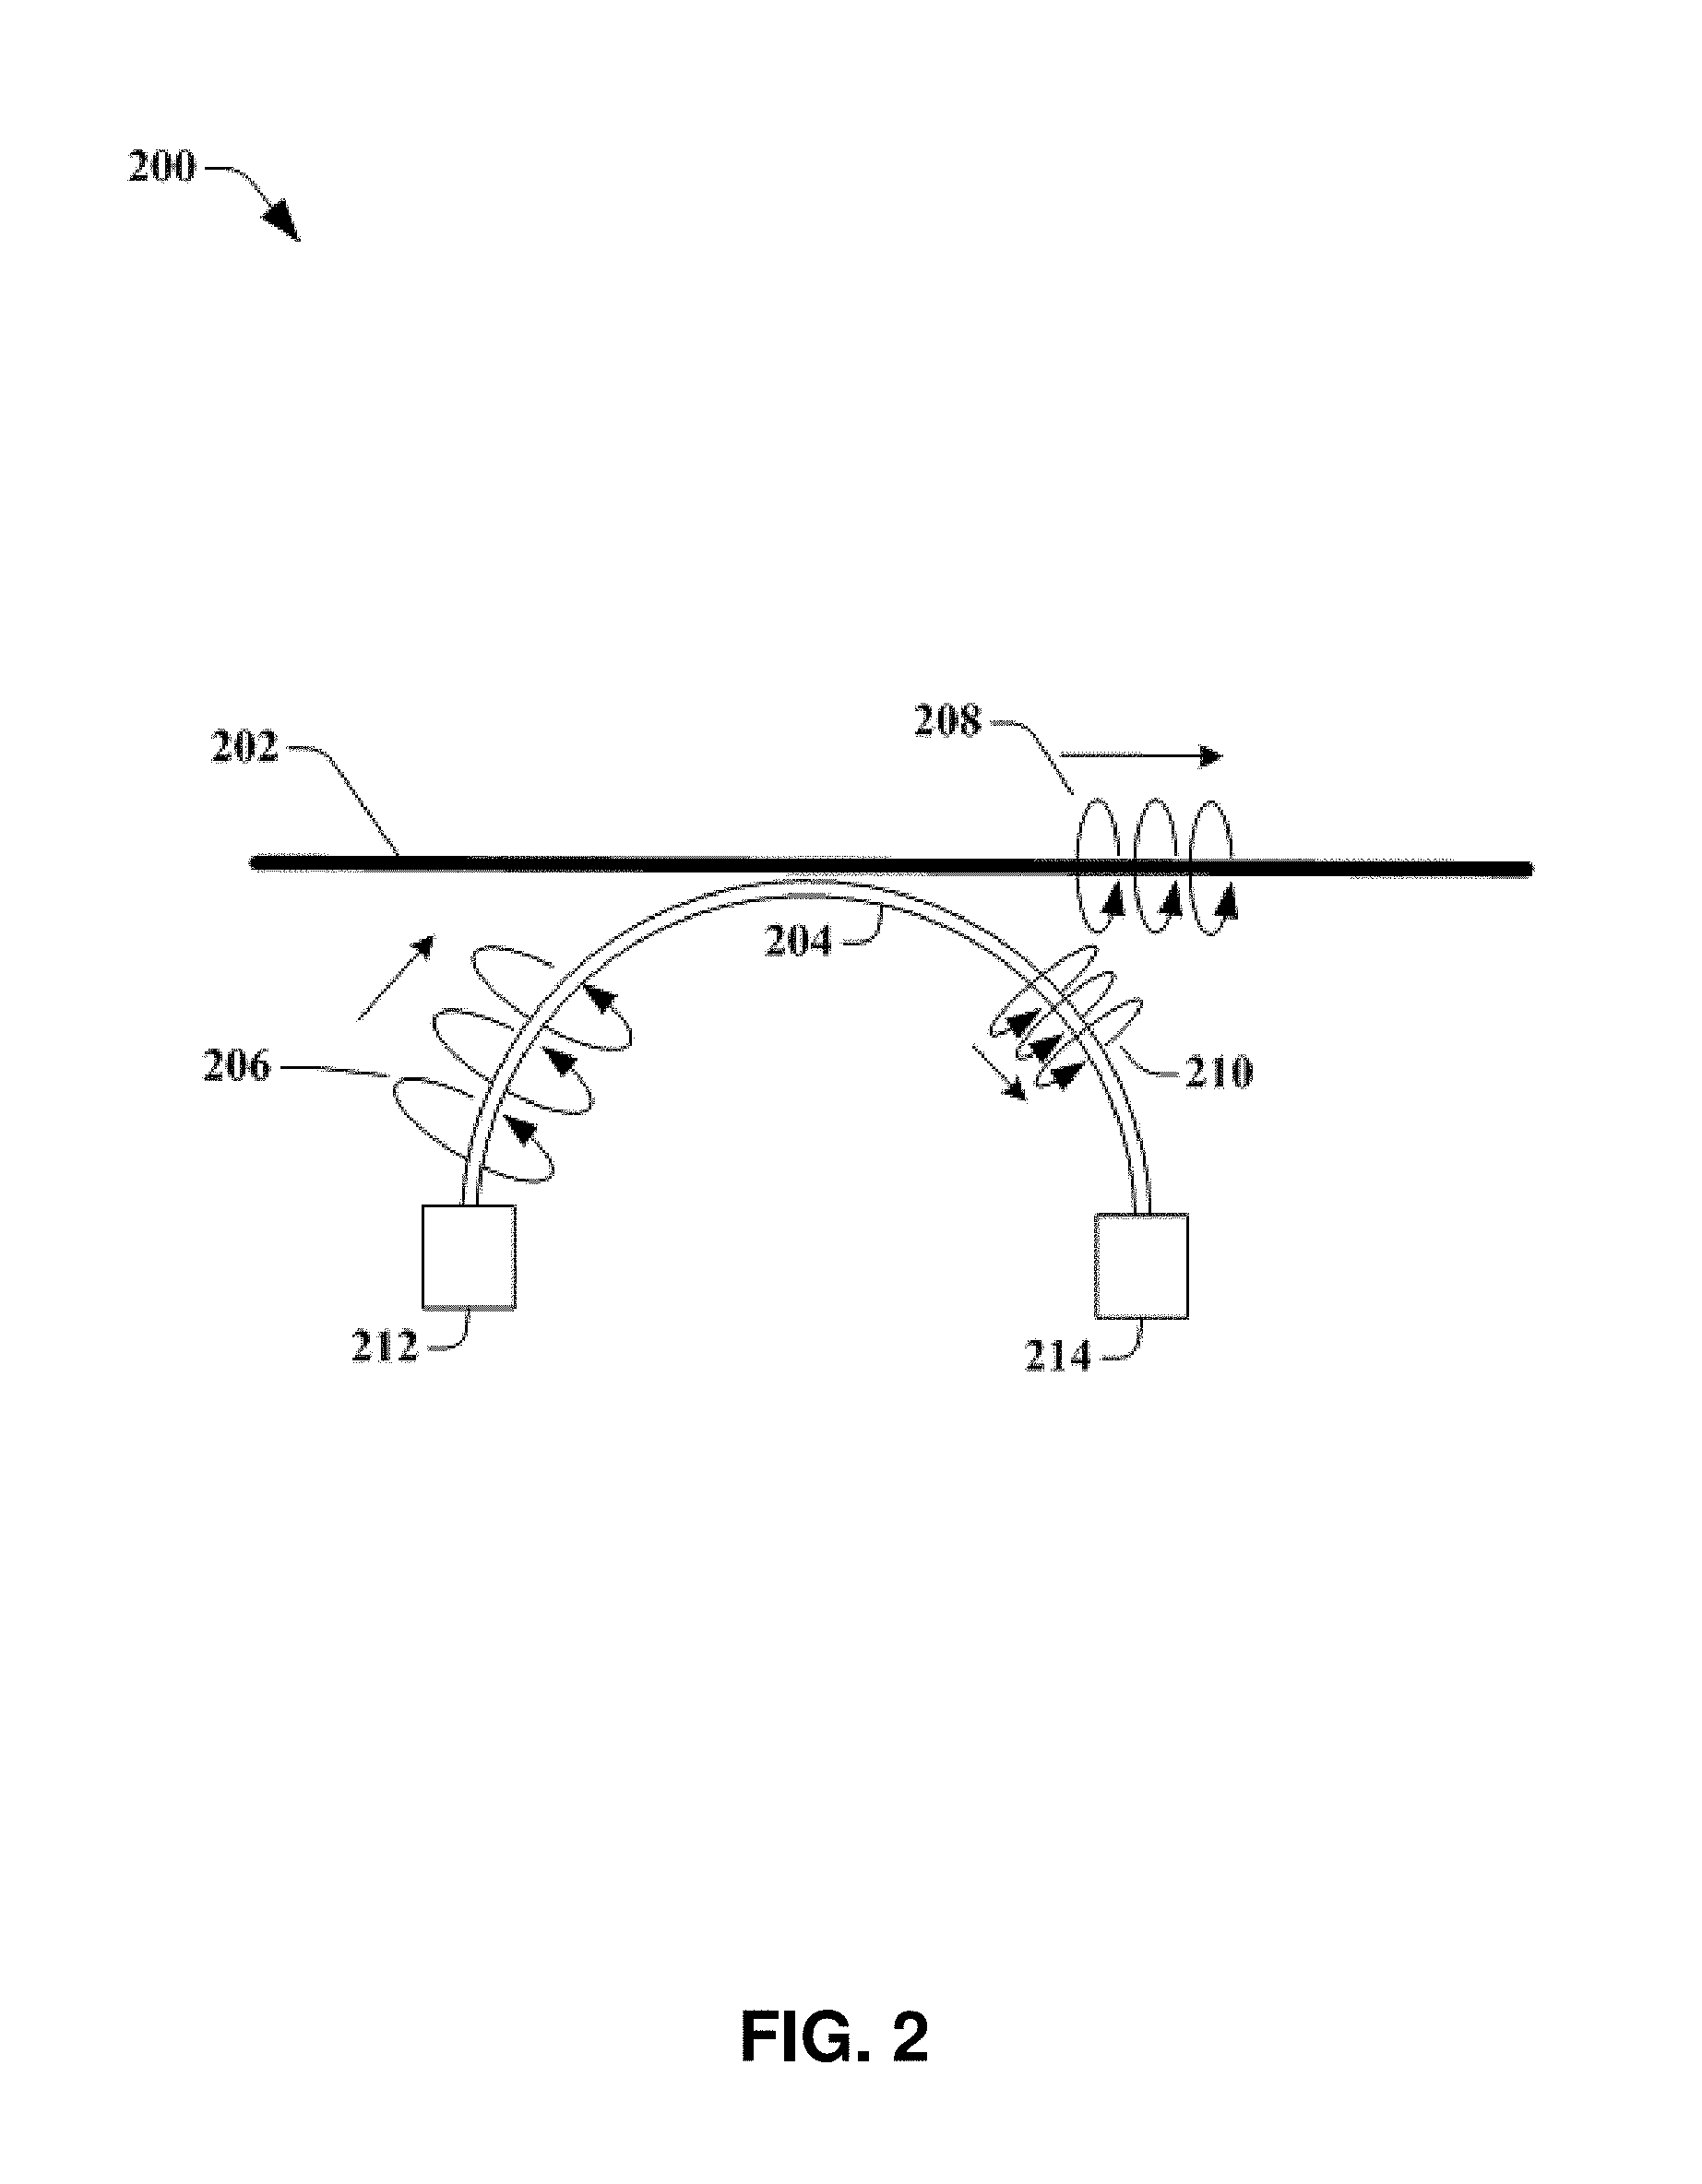 us9800327b2 apparatus for controlling operations of a X1 Xfinity Channel List us9800327b2 apparatus for controlling operations of a munication device and methods thereof patents